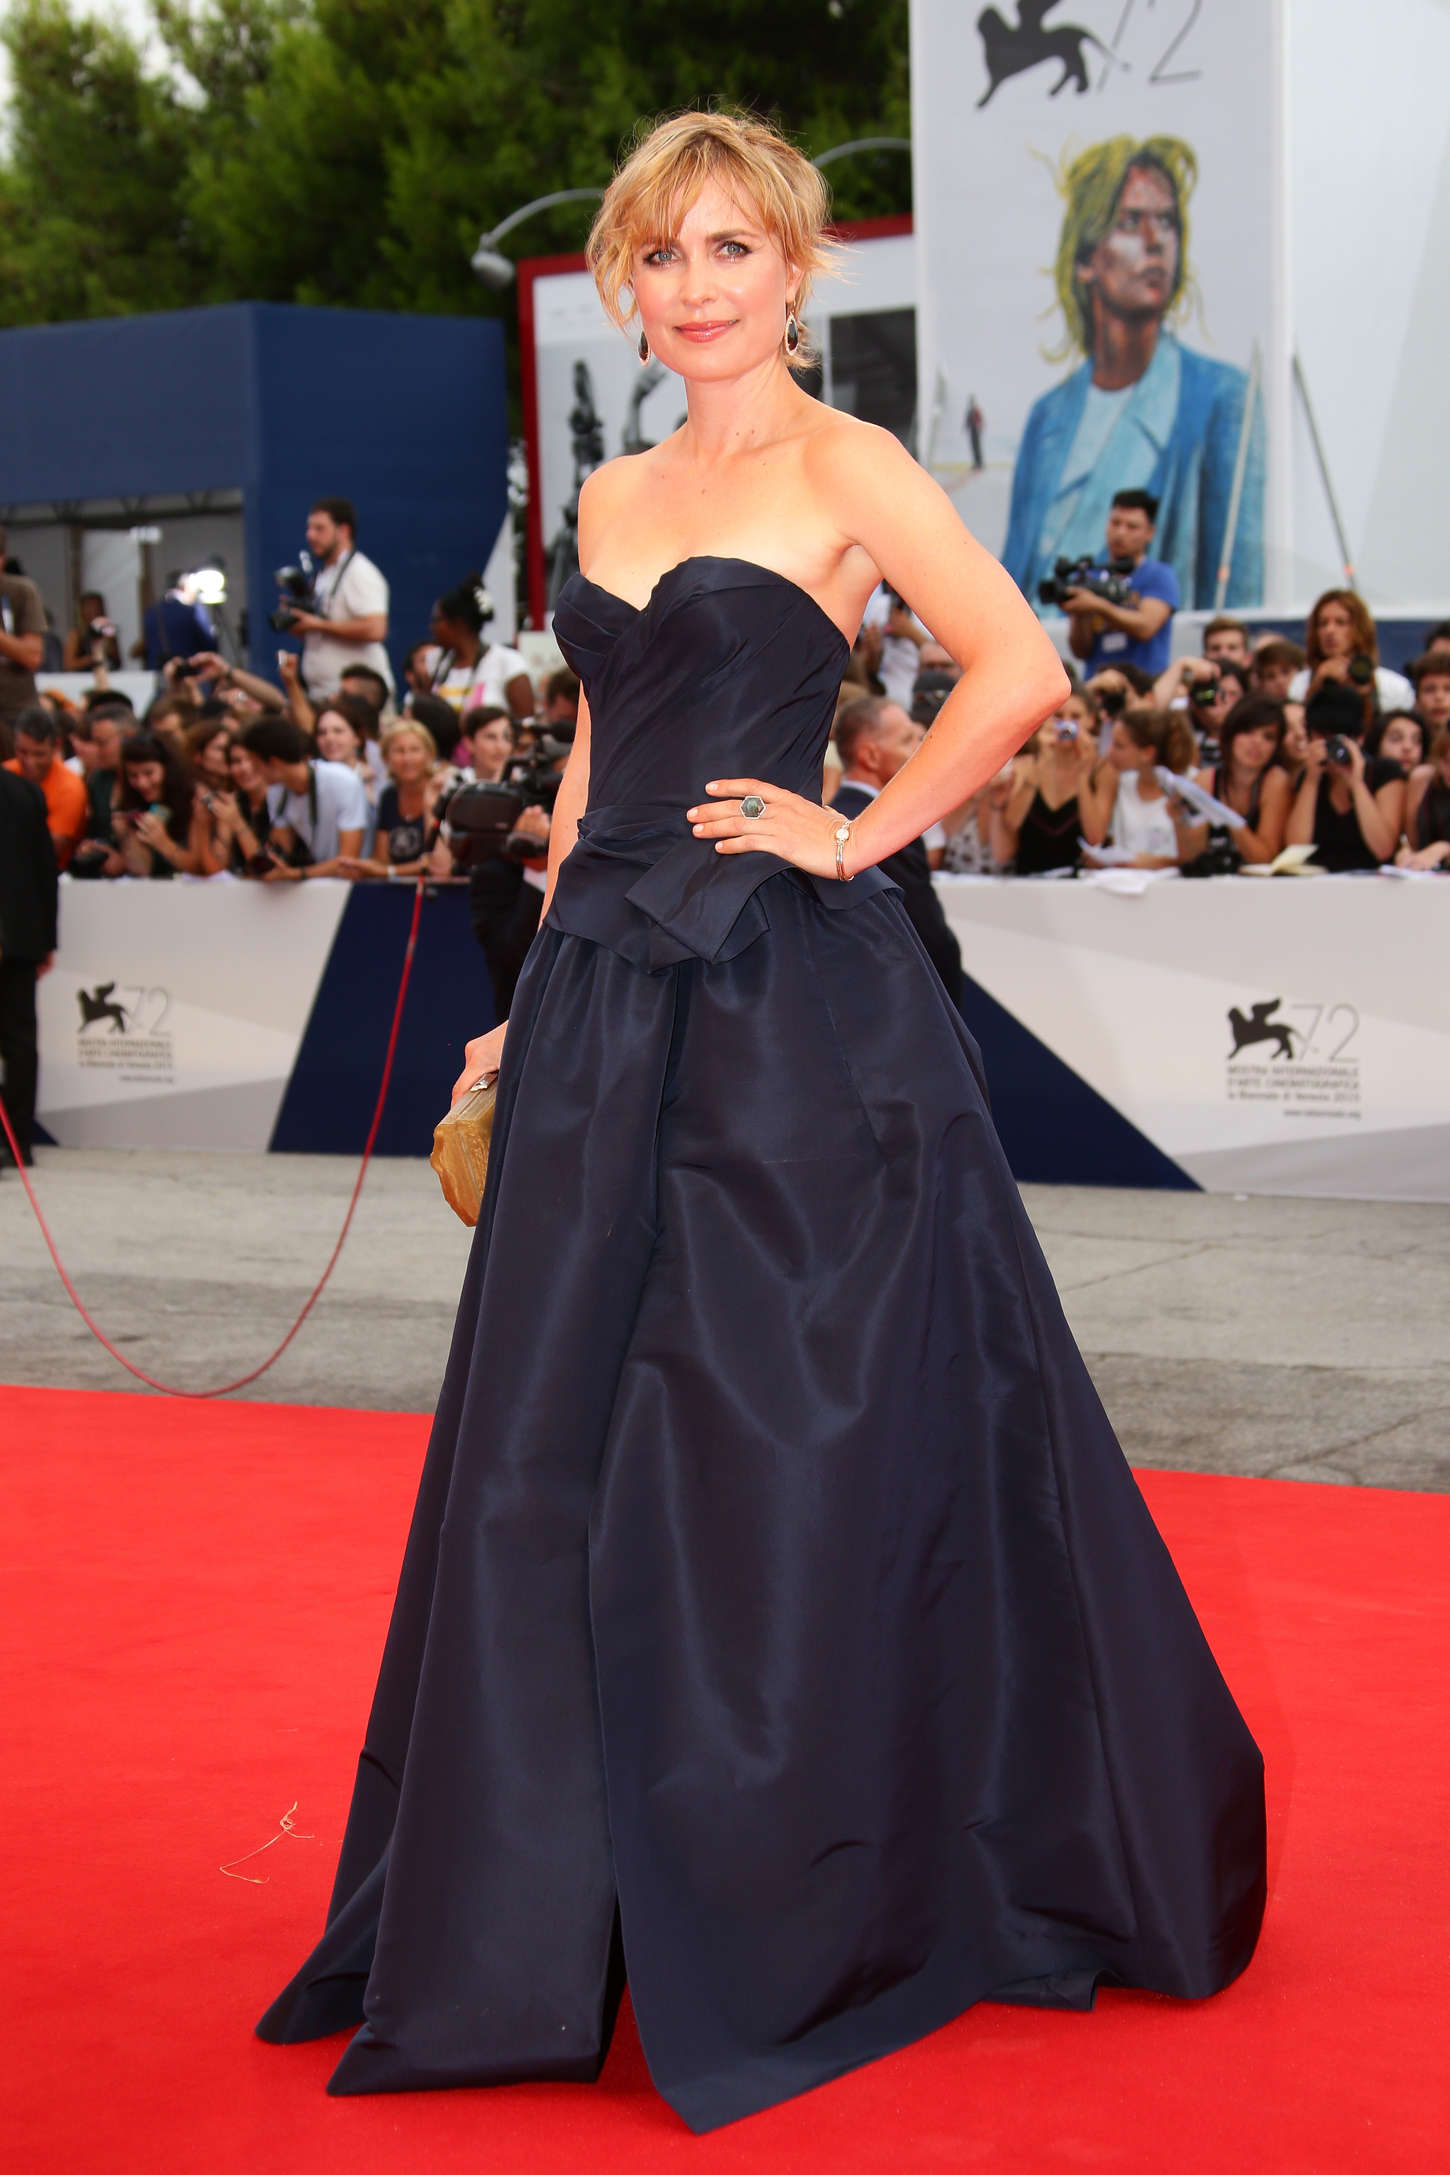 Radha Mitchell Opening Ceremony and Premiere of Everest at Venice Film Festival